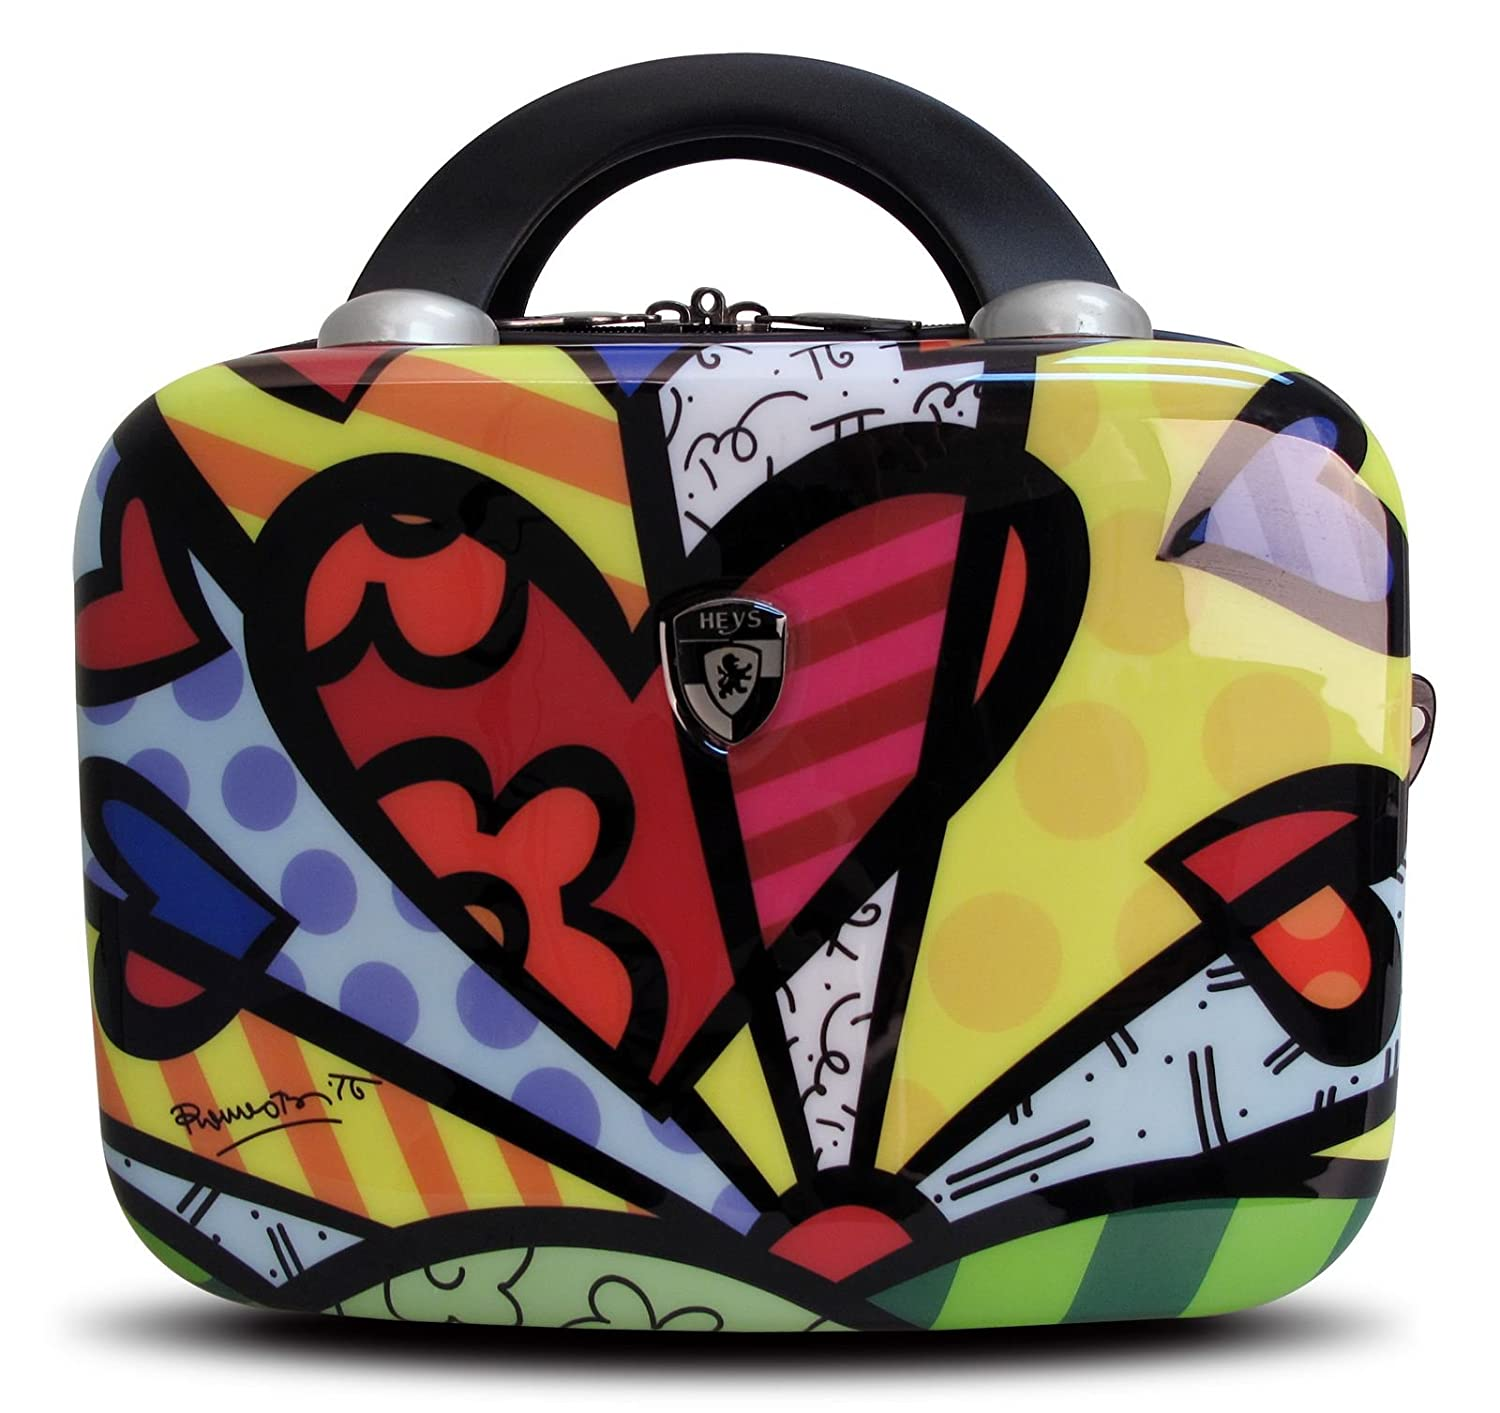 Heys – Künstler Britto A New Day Carry On Beauty Case